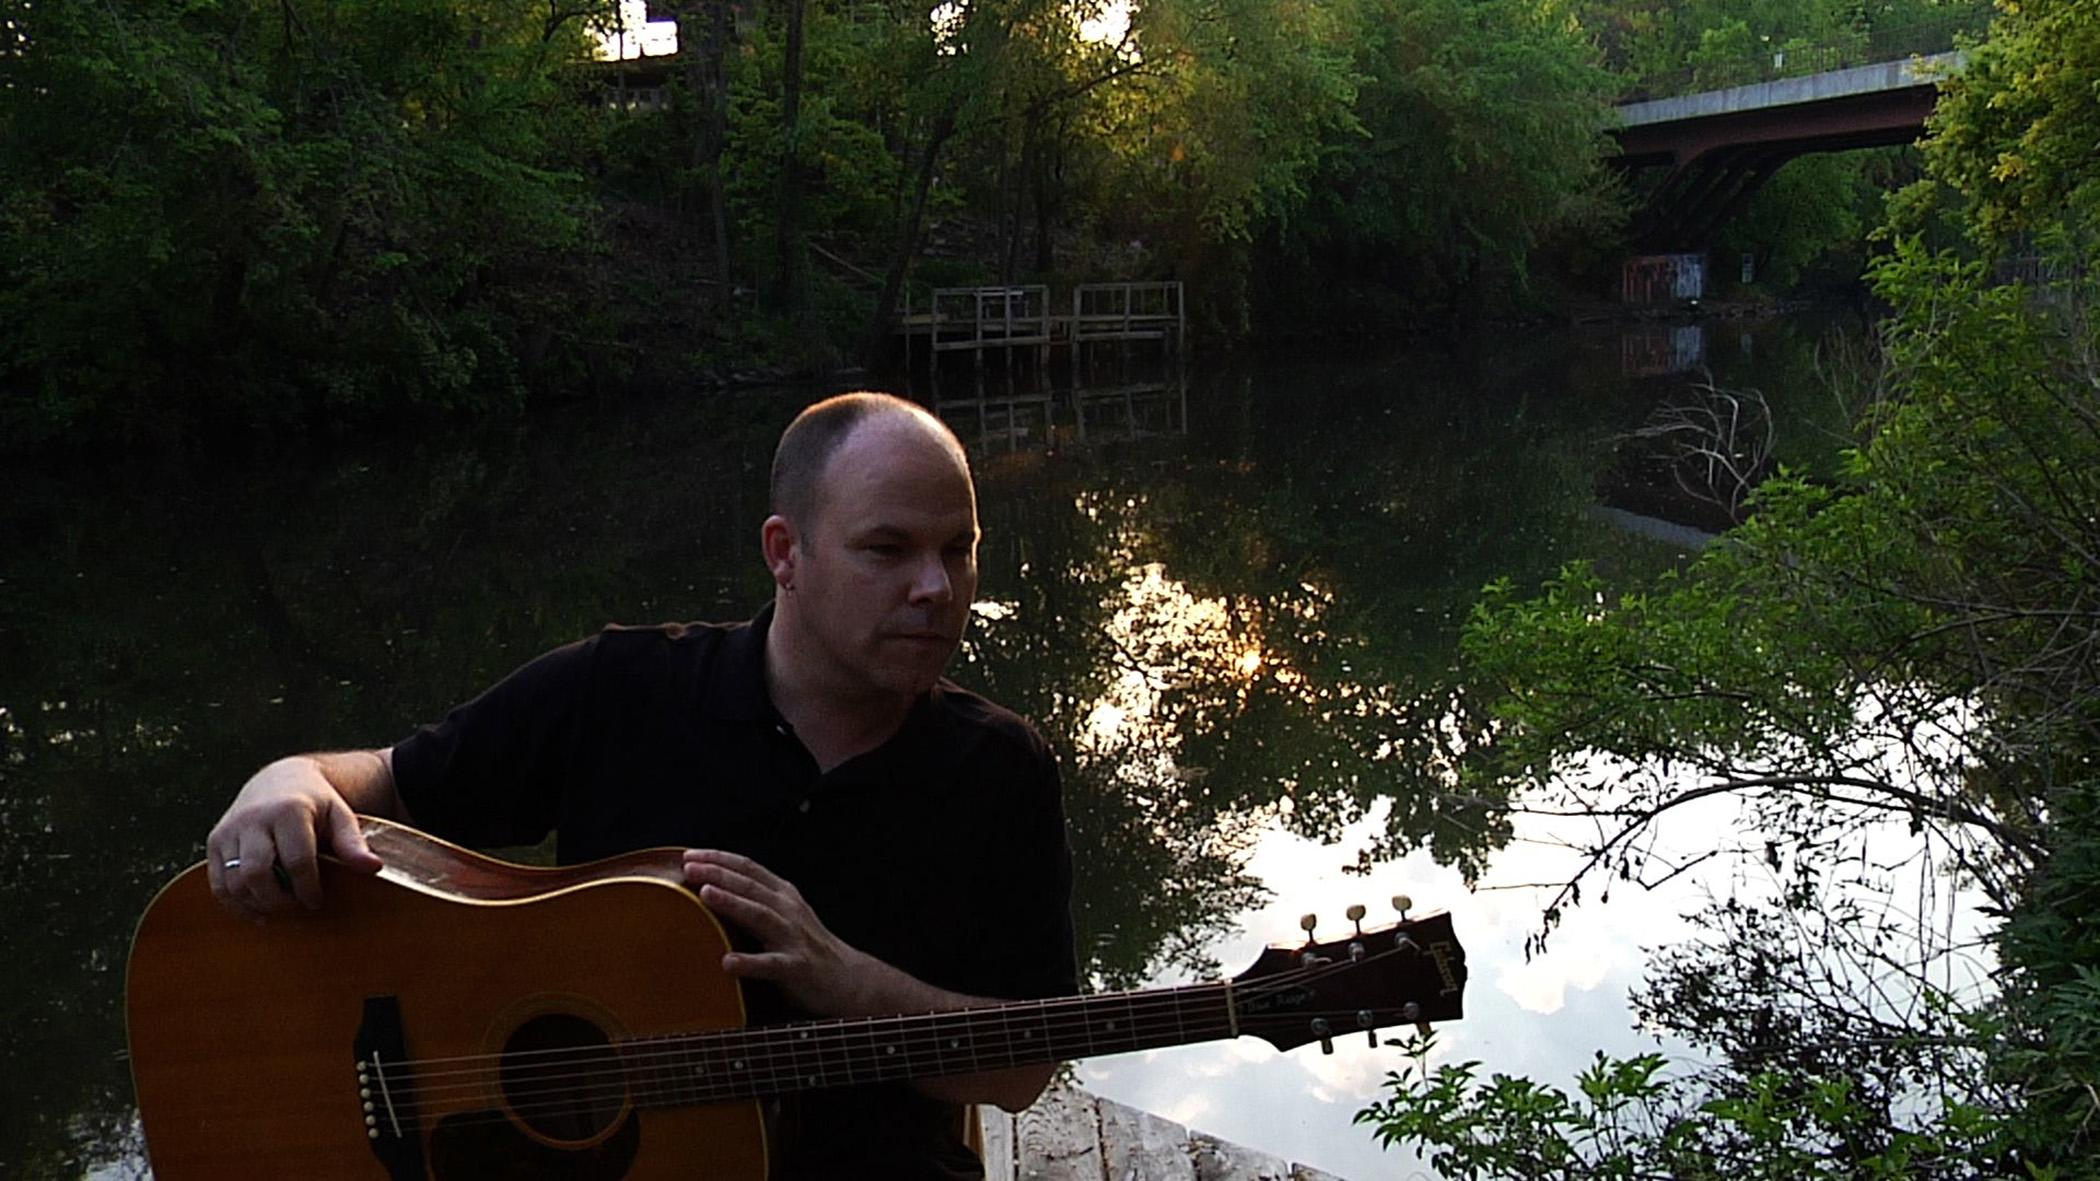 A man holding a guitar in front of a secluded tree-lined body of water